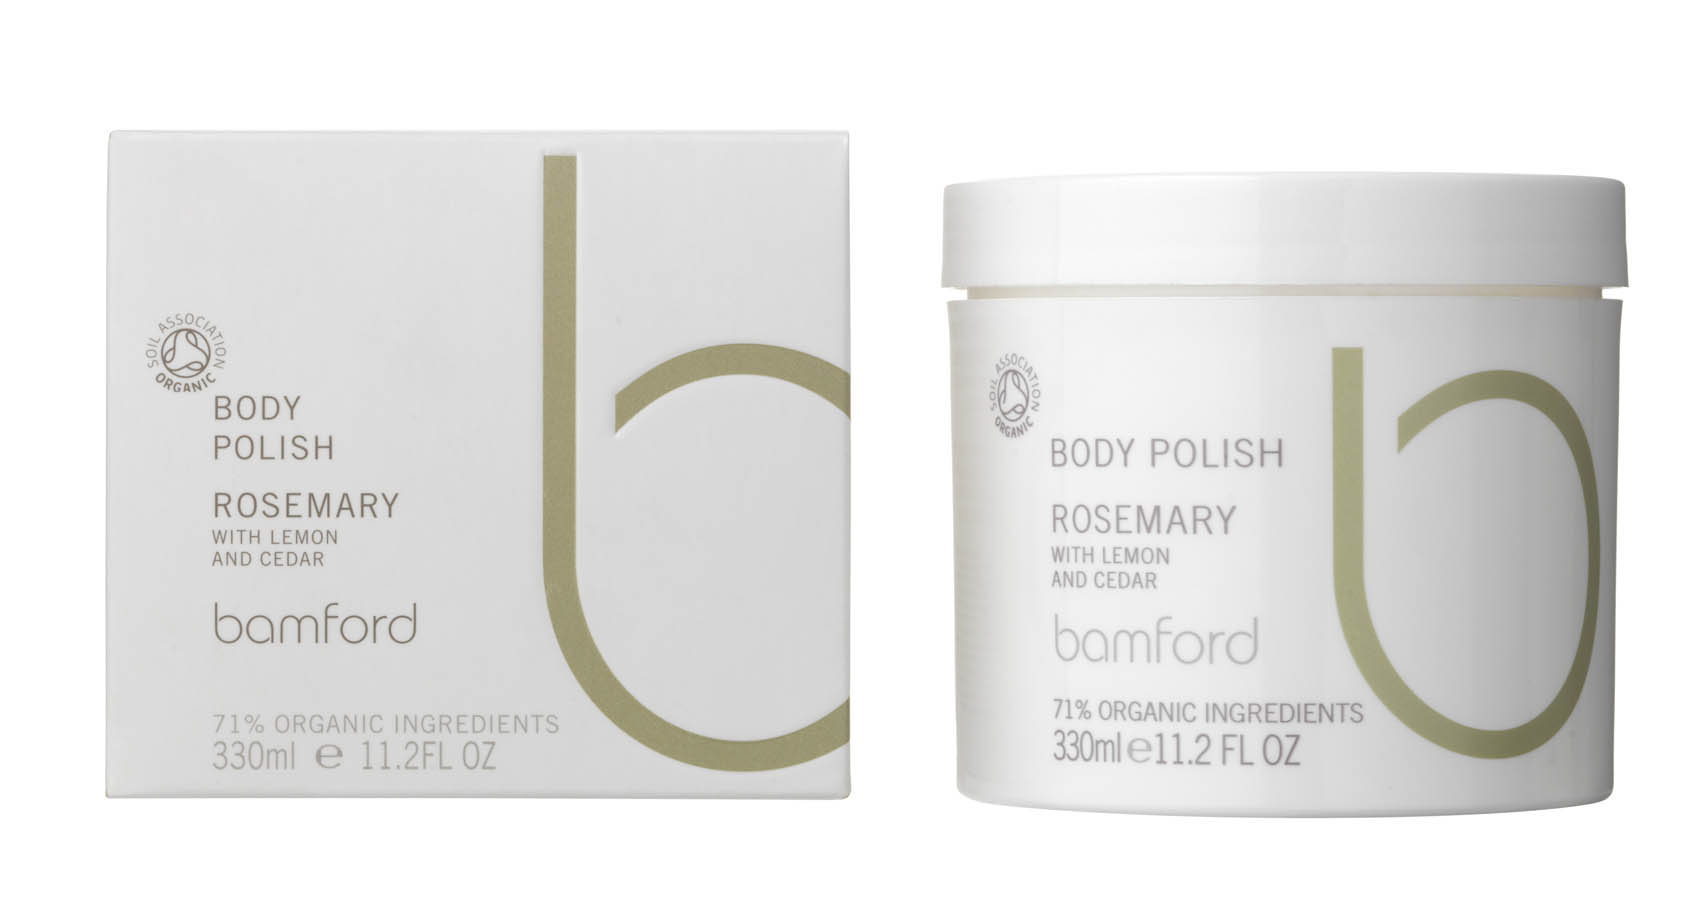 Bamford Bath and Body Rosemary Polish